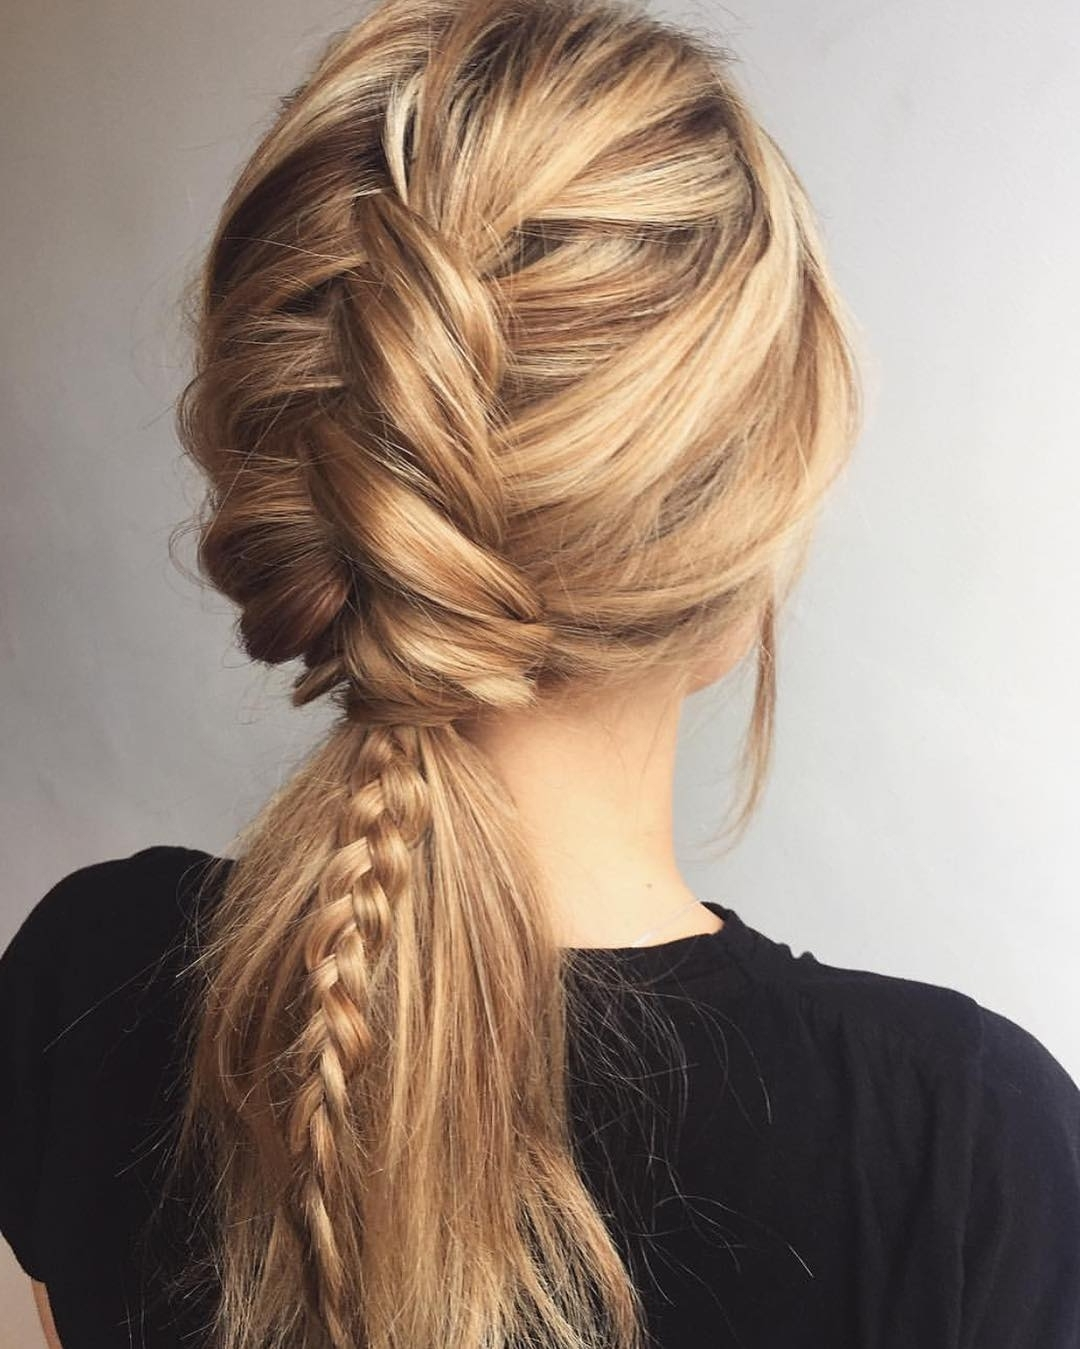 Best And Newest Intricate Updo Ponytail Hairstyles For Highlighted Hair Regarding 10 Ultra Ponytail Braided Hairstyles For Long Hair; Parties!  (View 4 of 20)